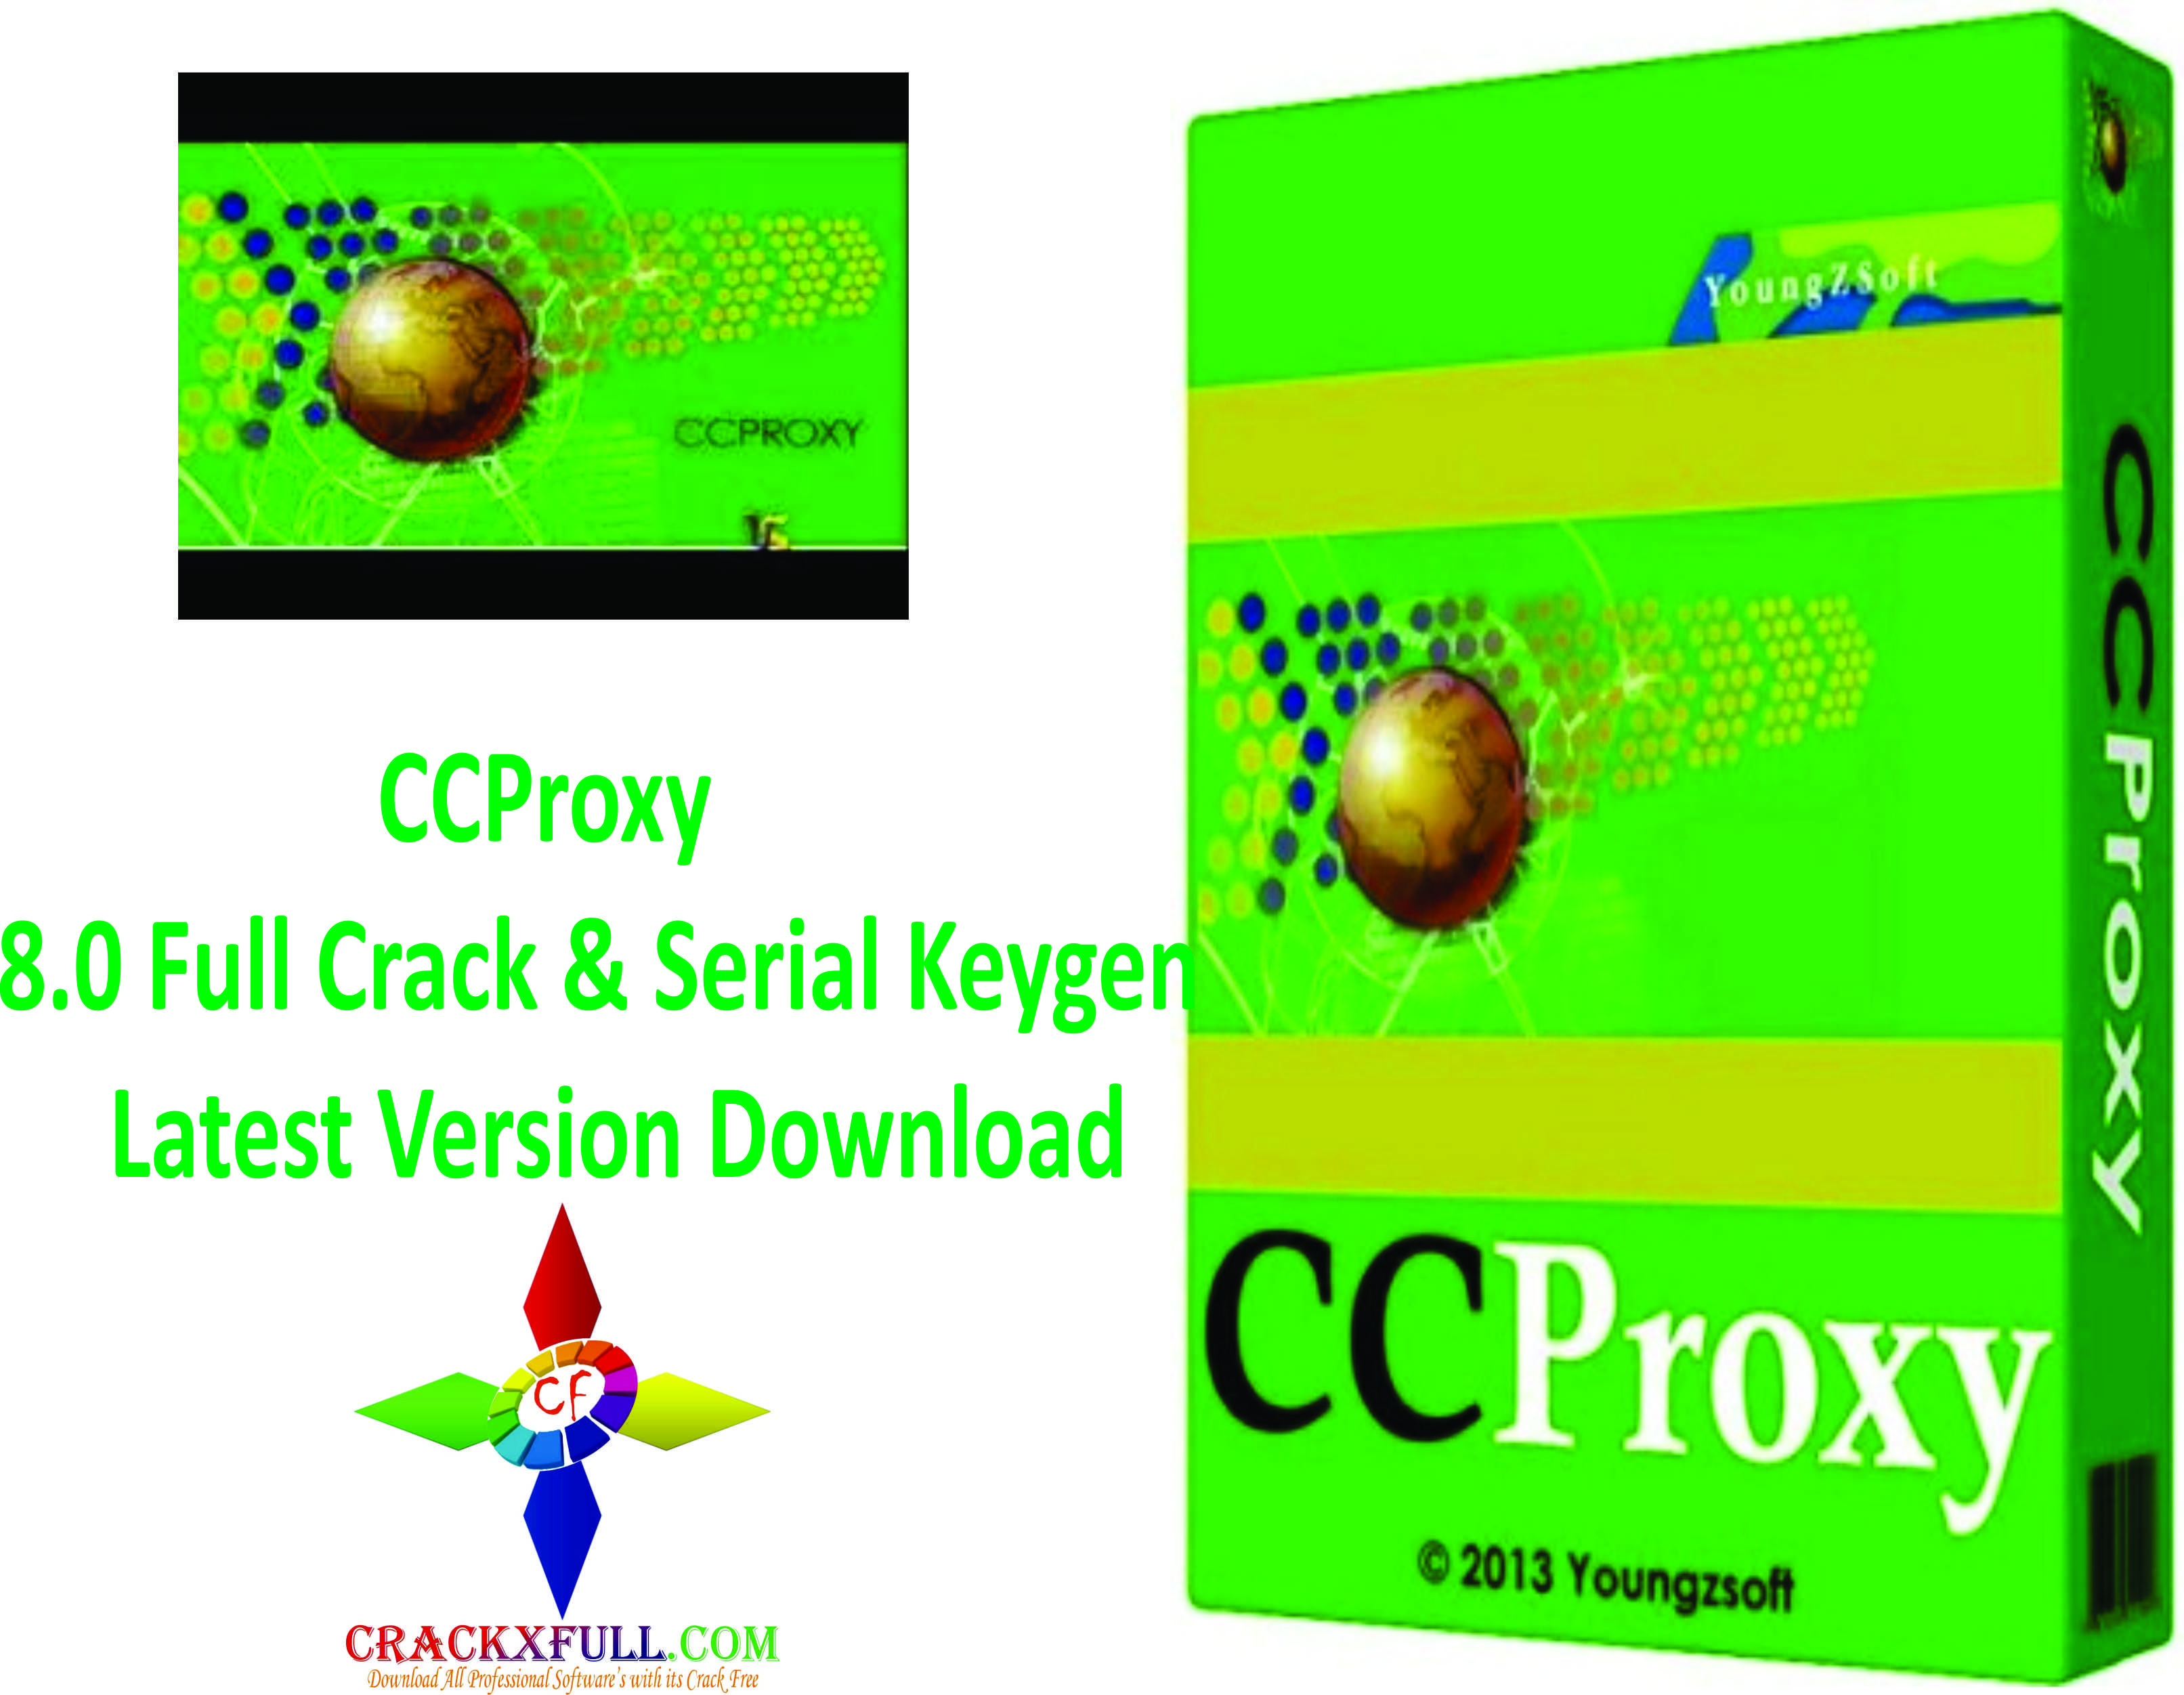 ccproxy 8.0 free download